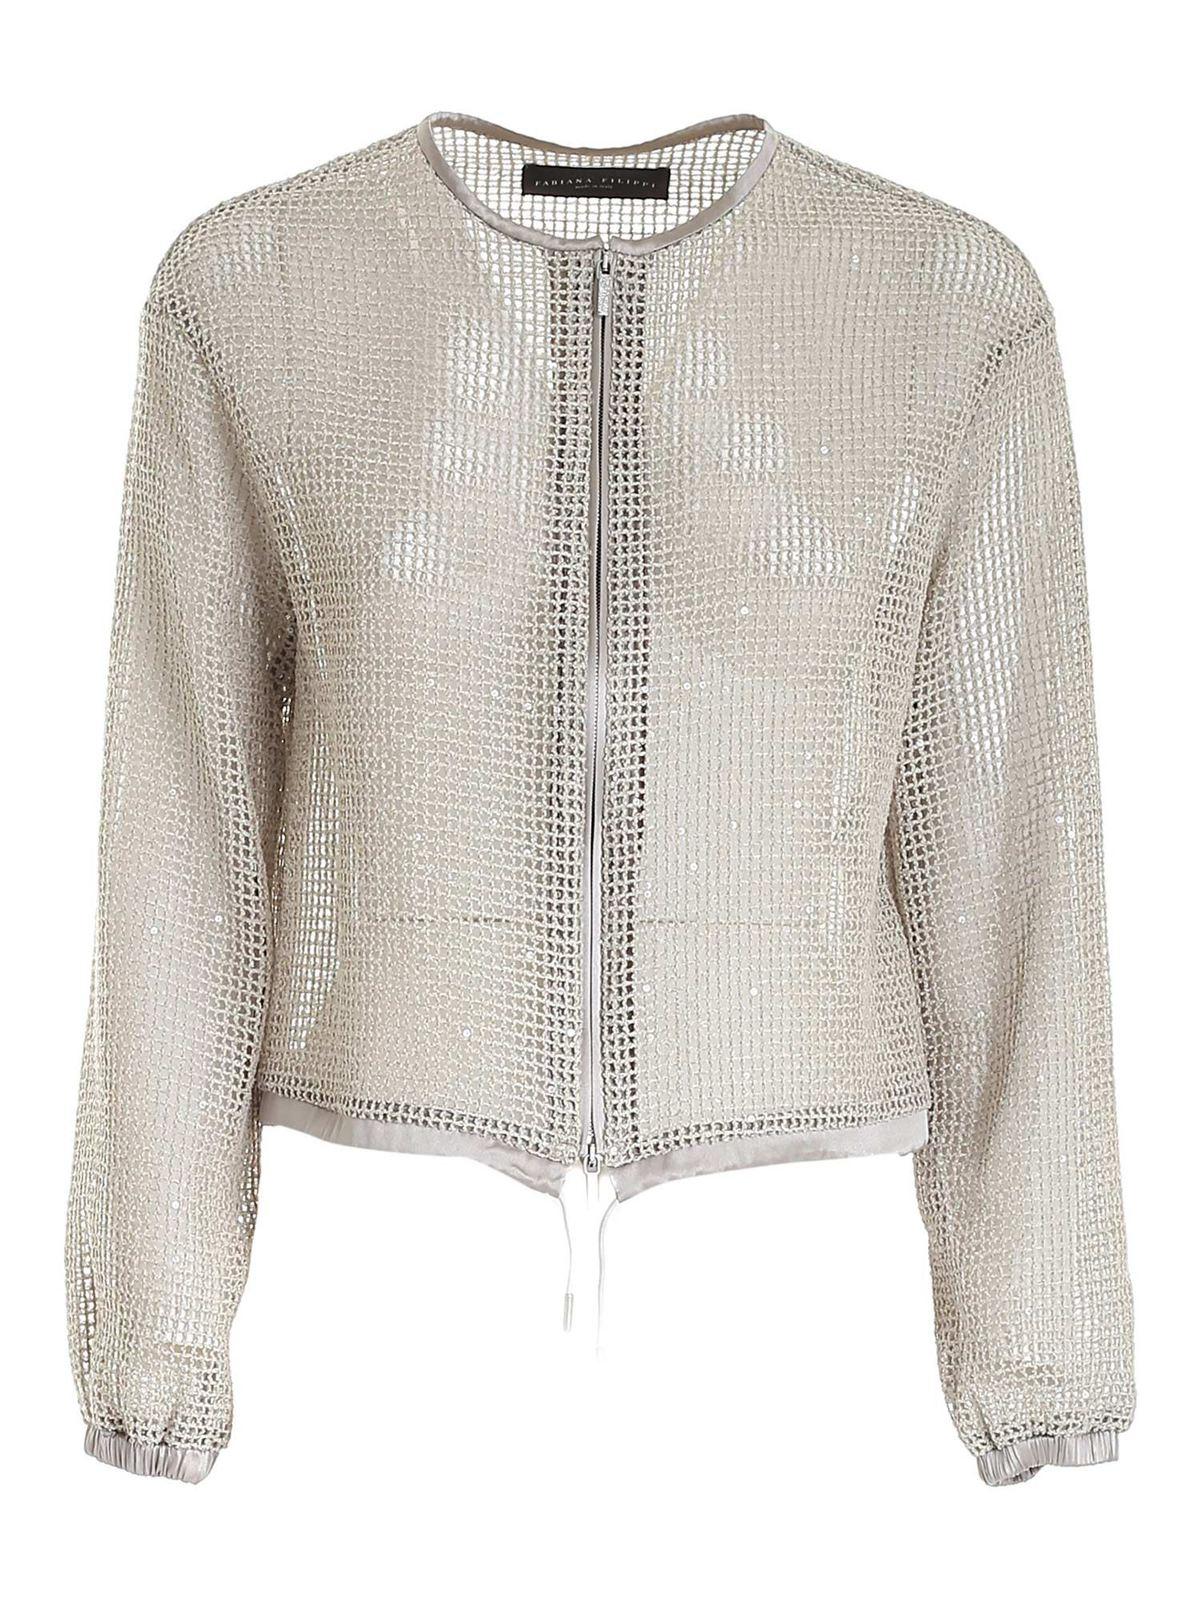 Fabiana Filippi MESH EFFECT JACKET WITH SEQUINS IN BEIGE